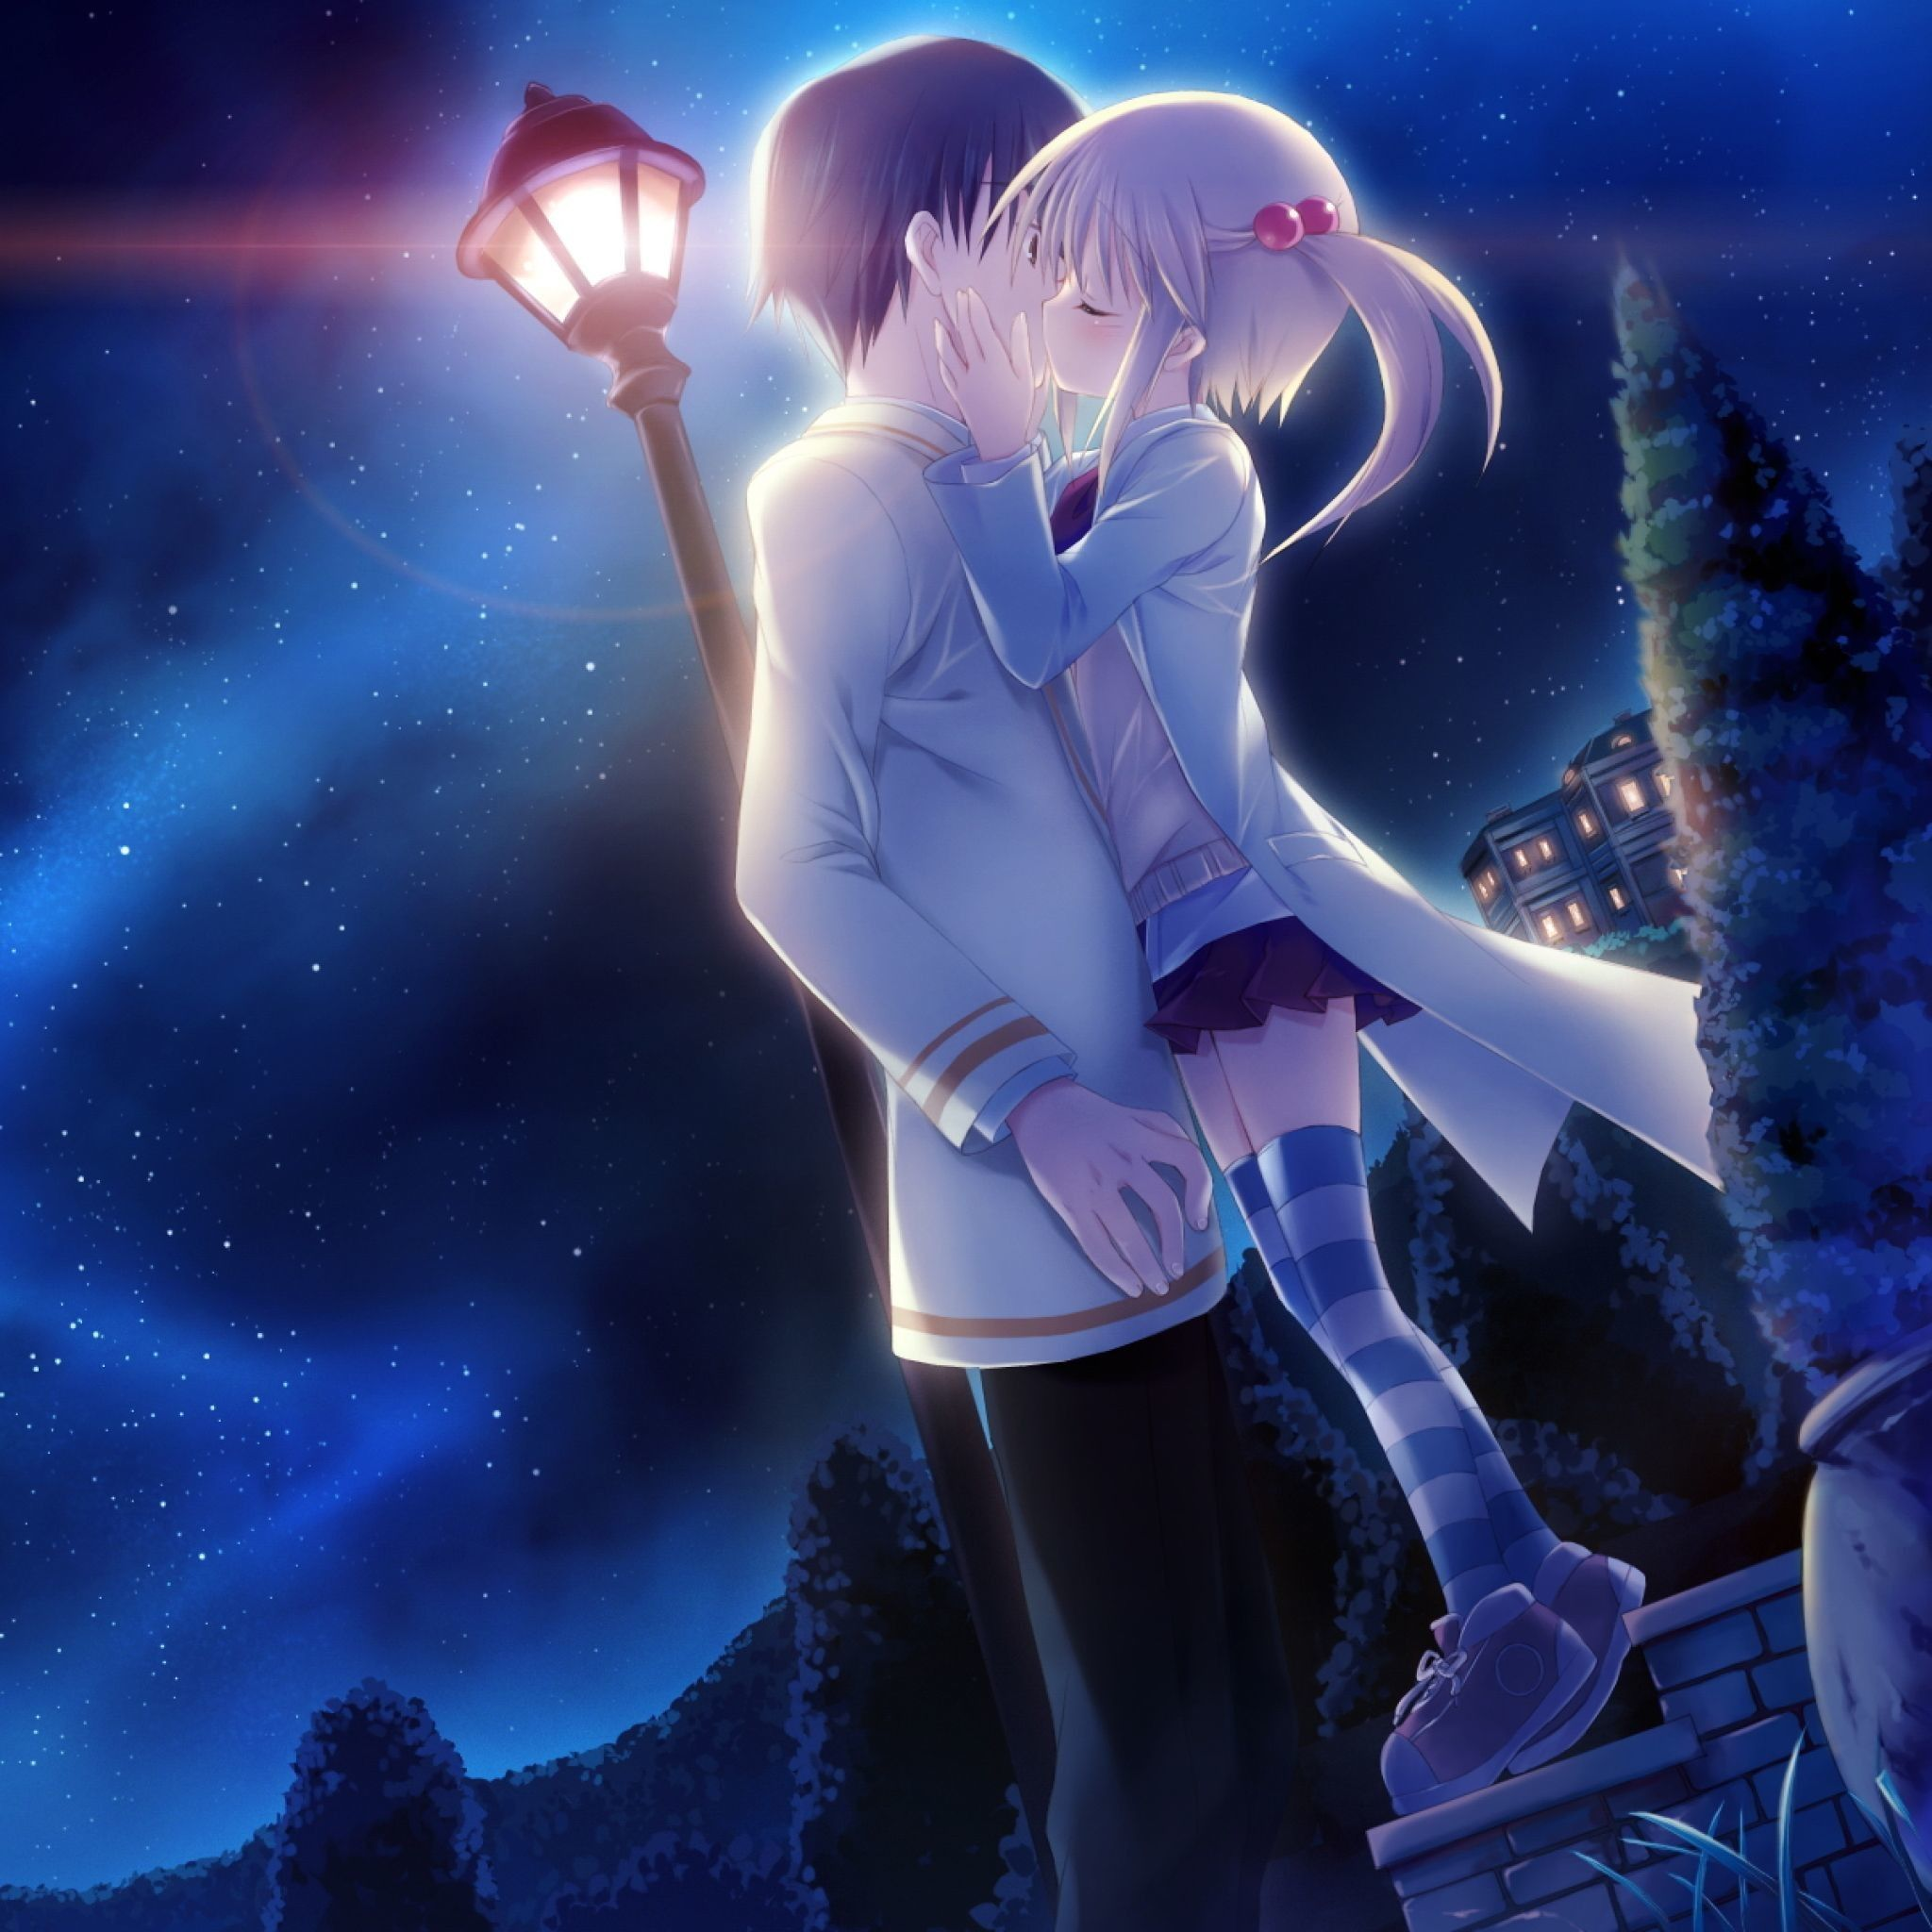 Cute Anime Love Wallpapers Top Free Cute Anime Love Backgrounds Wallpaperaccess